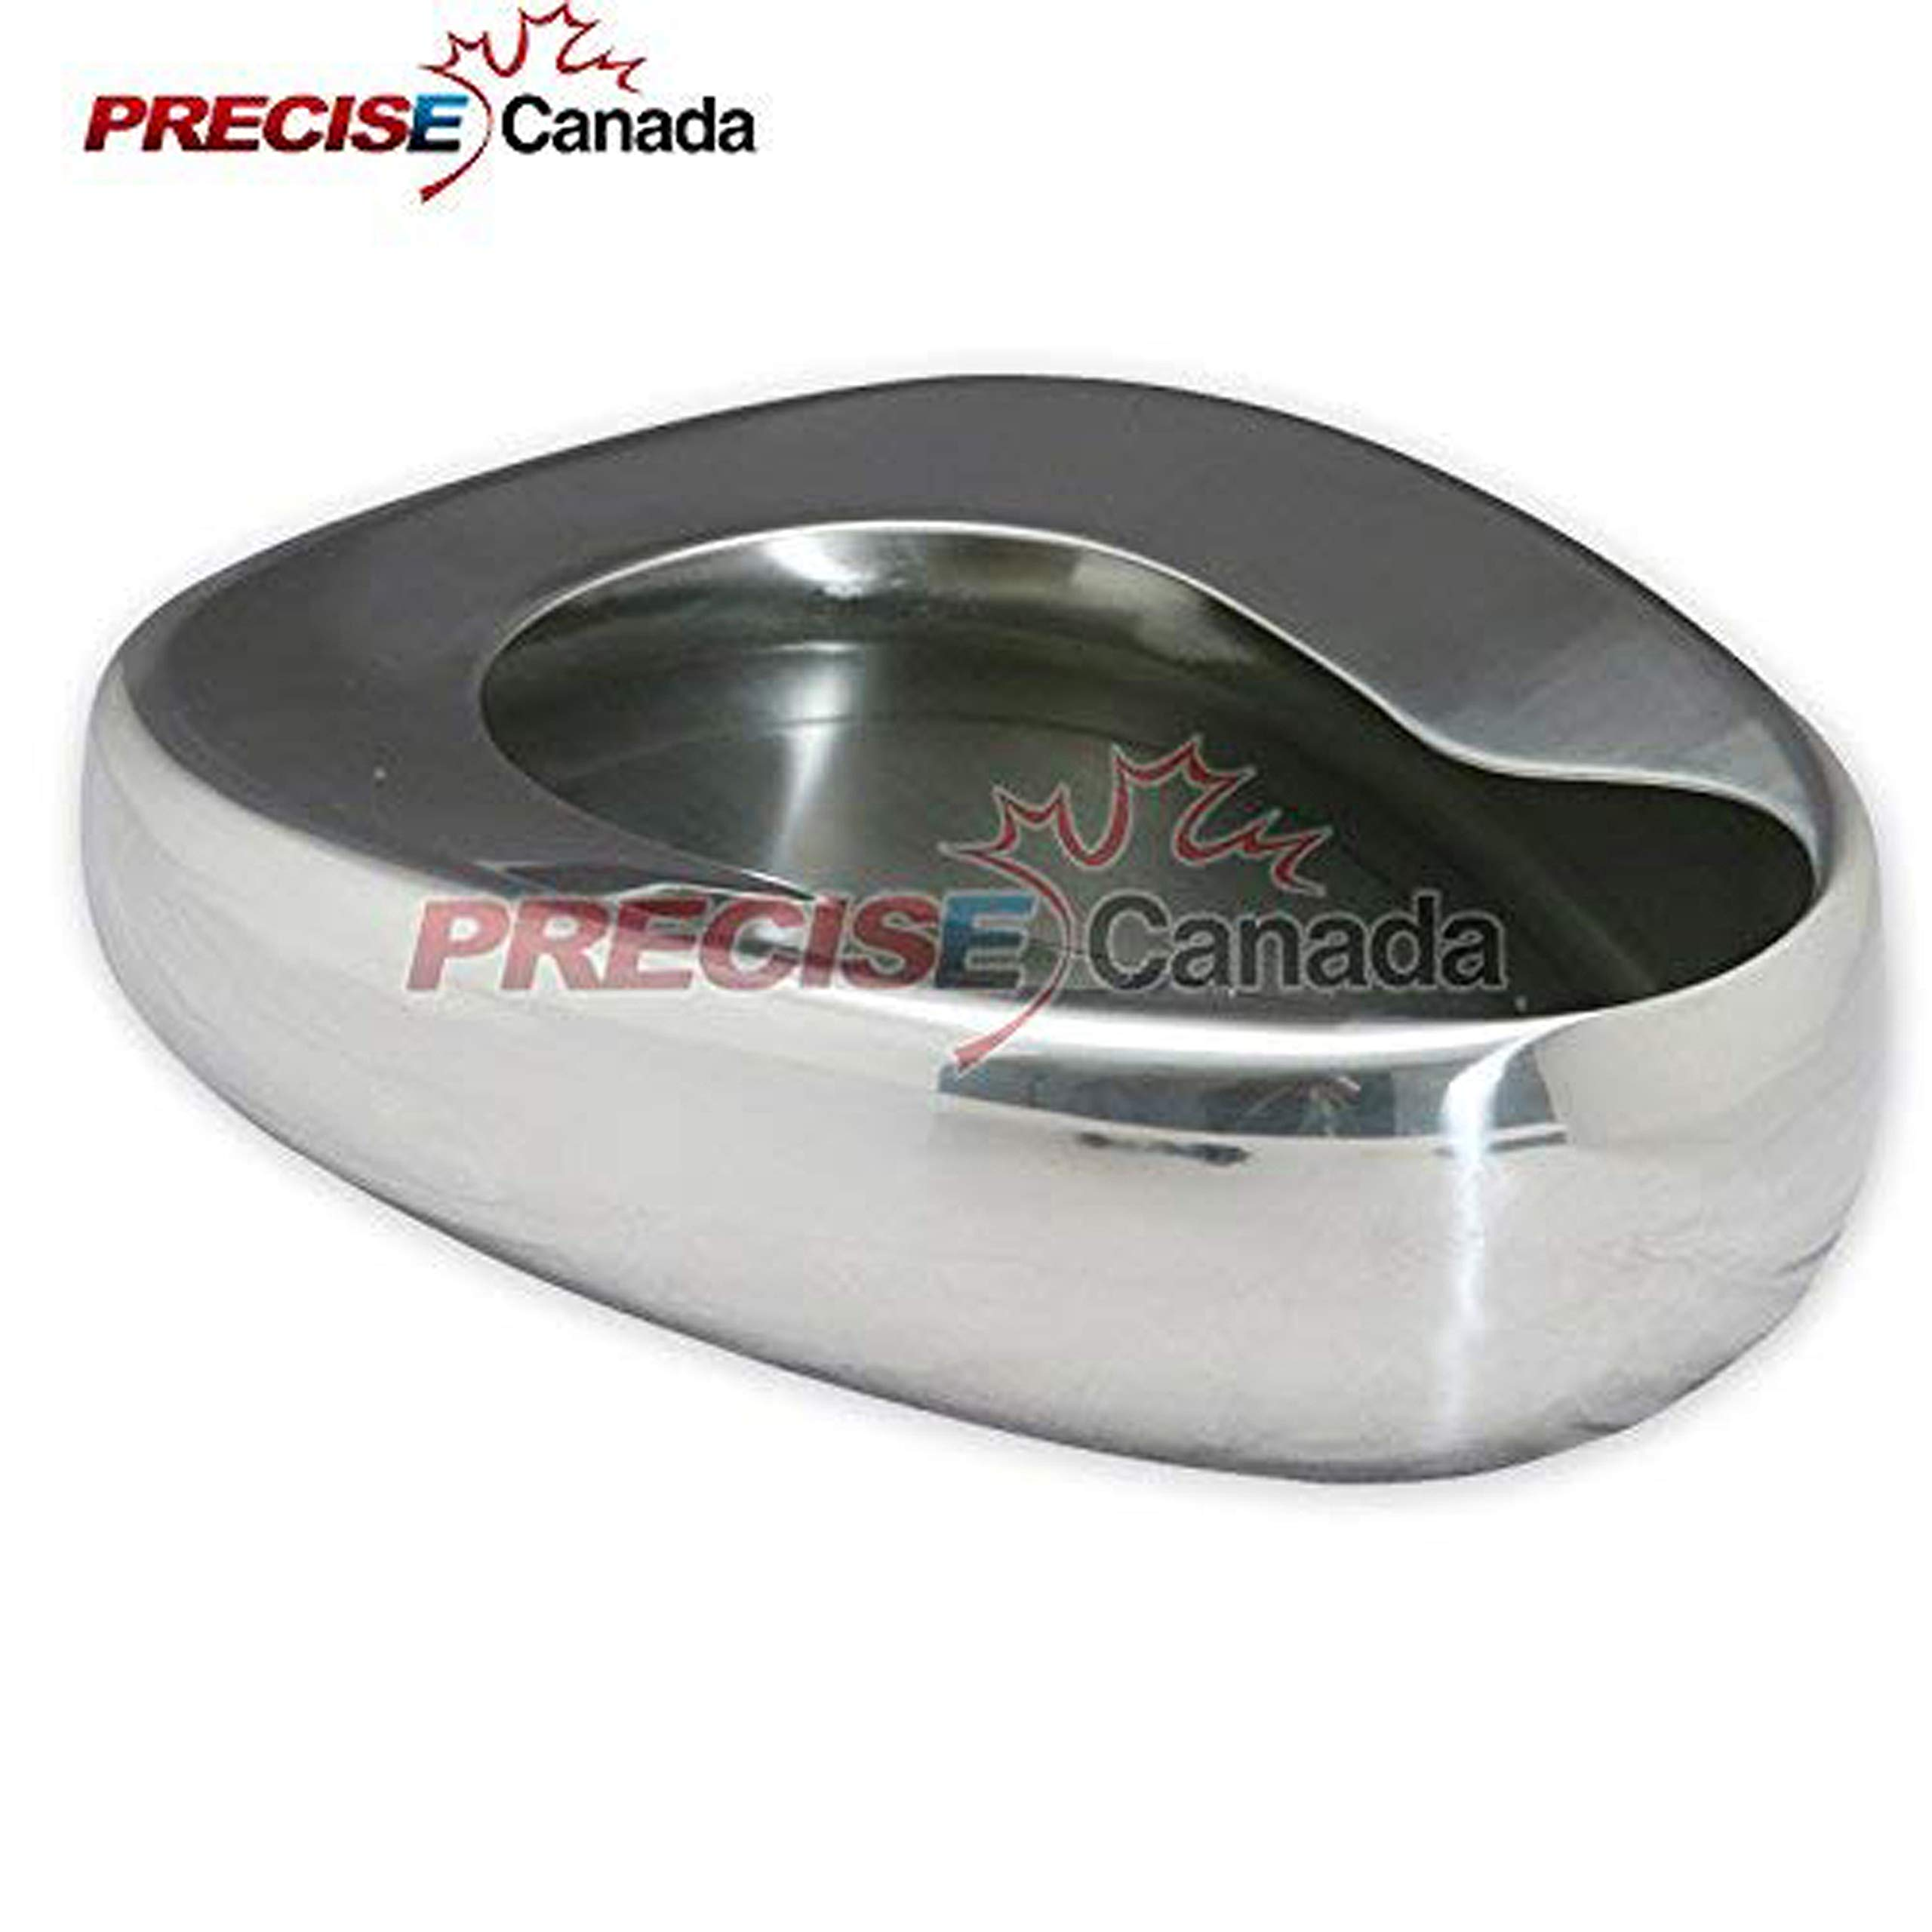 PRECISE CANADA PC Stainless Steel Bed Pans - Adult: 14'' X 11 3/8'' Quality Bed Pans